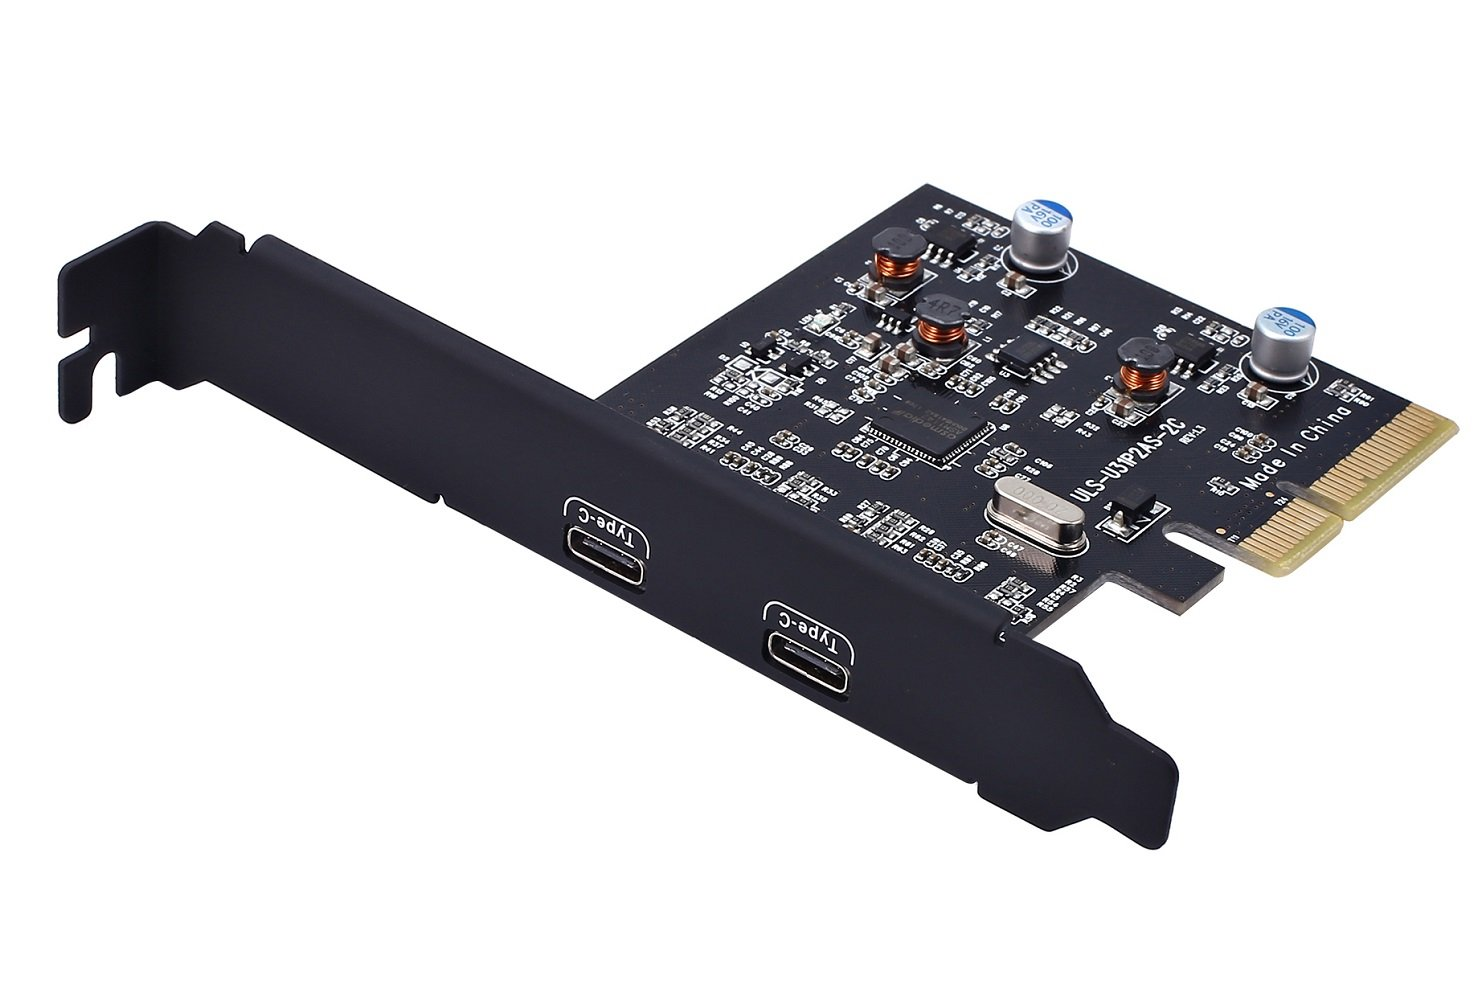 PCI-E PCI Express 4X to USB 3.1 Gen 2 (10 Gbps) 2-Port Type